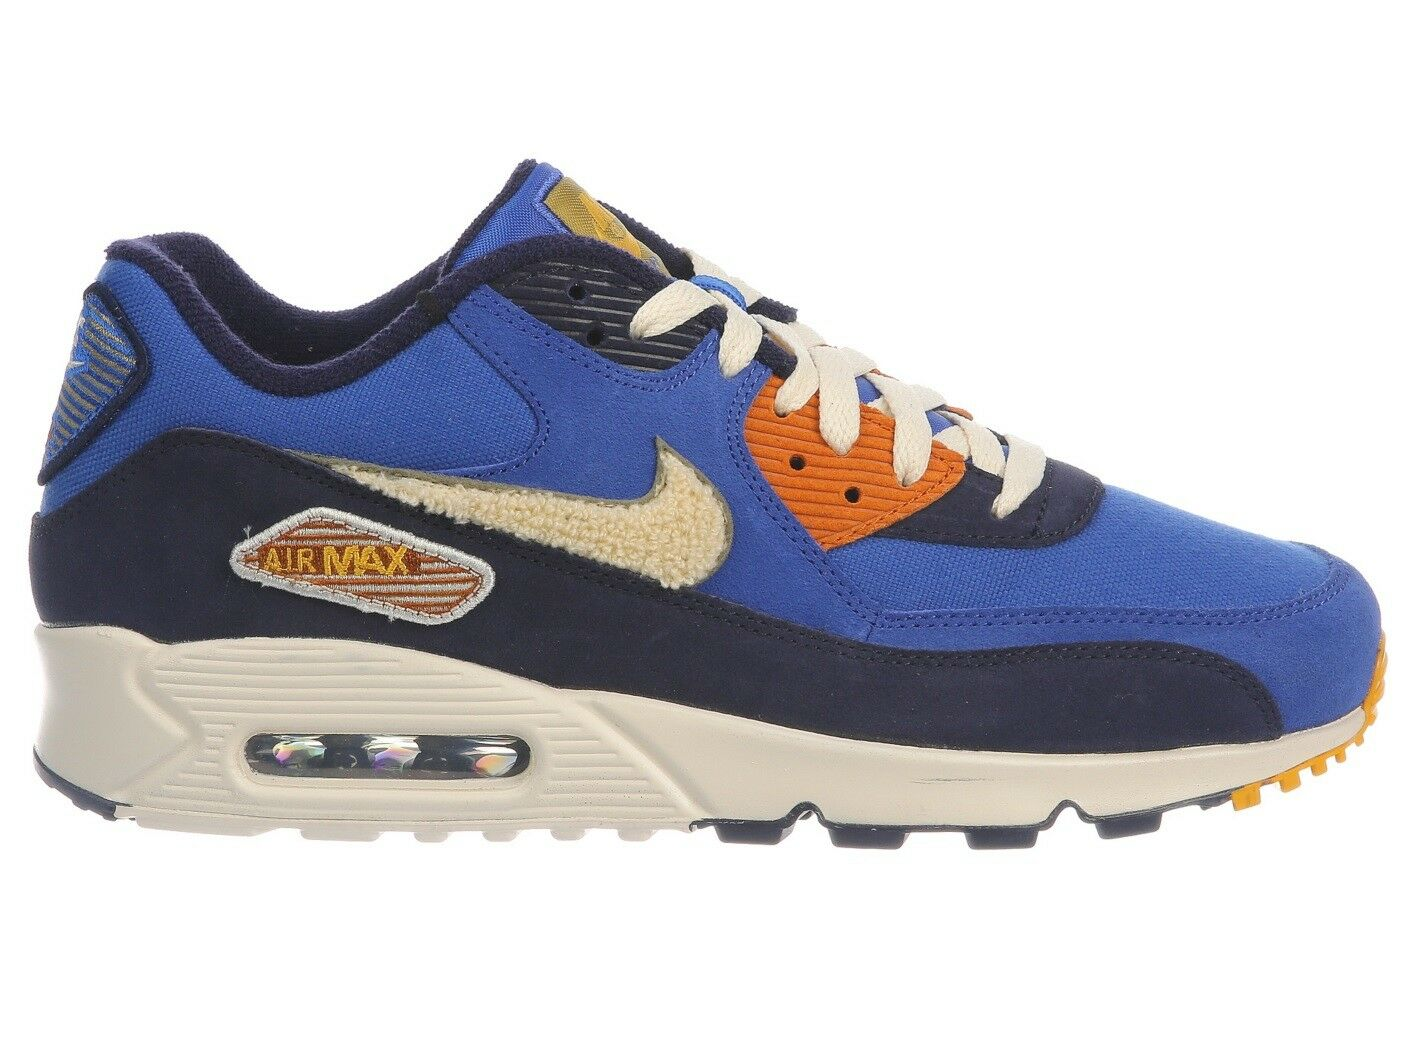 Nike Air Max 90 Premium SE Mens 858954-400 Royal Cream Running Shoes Size 7.5